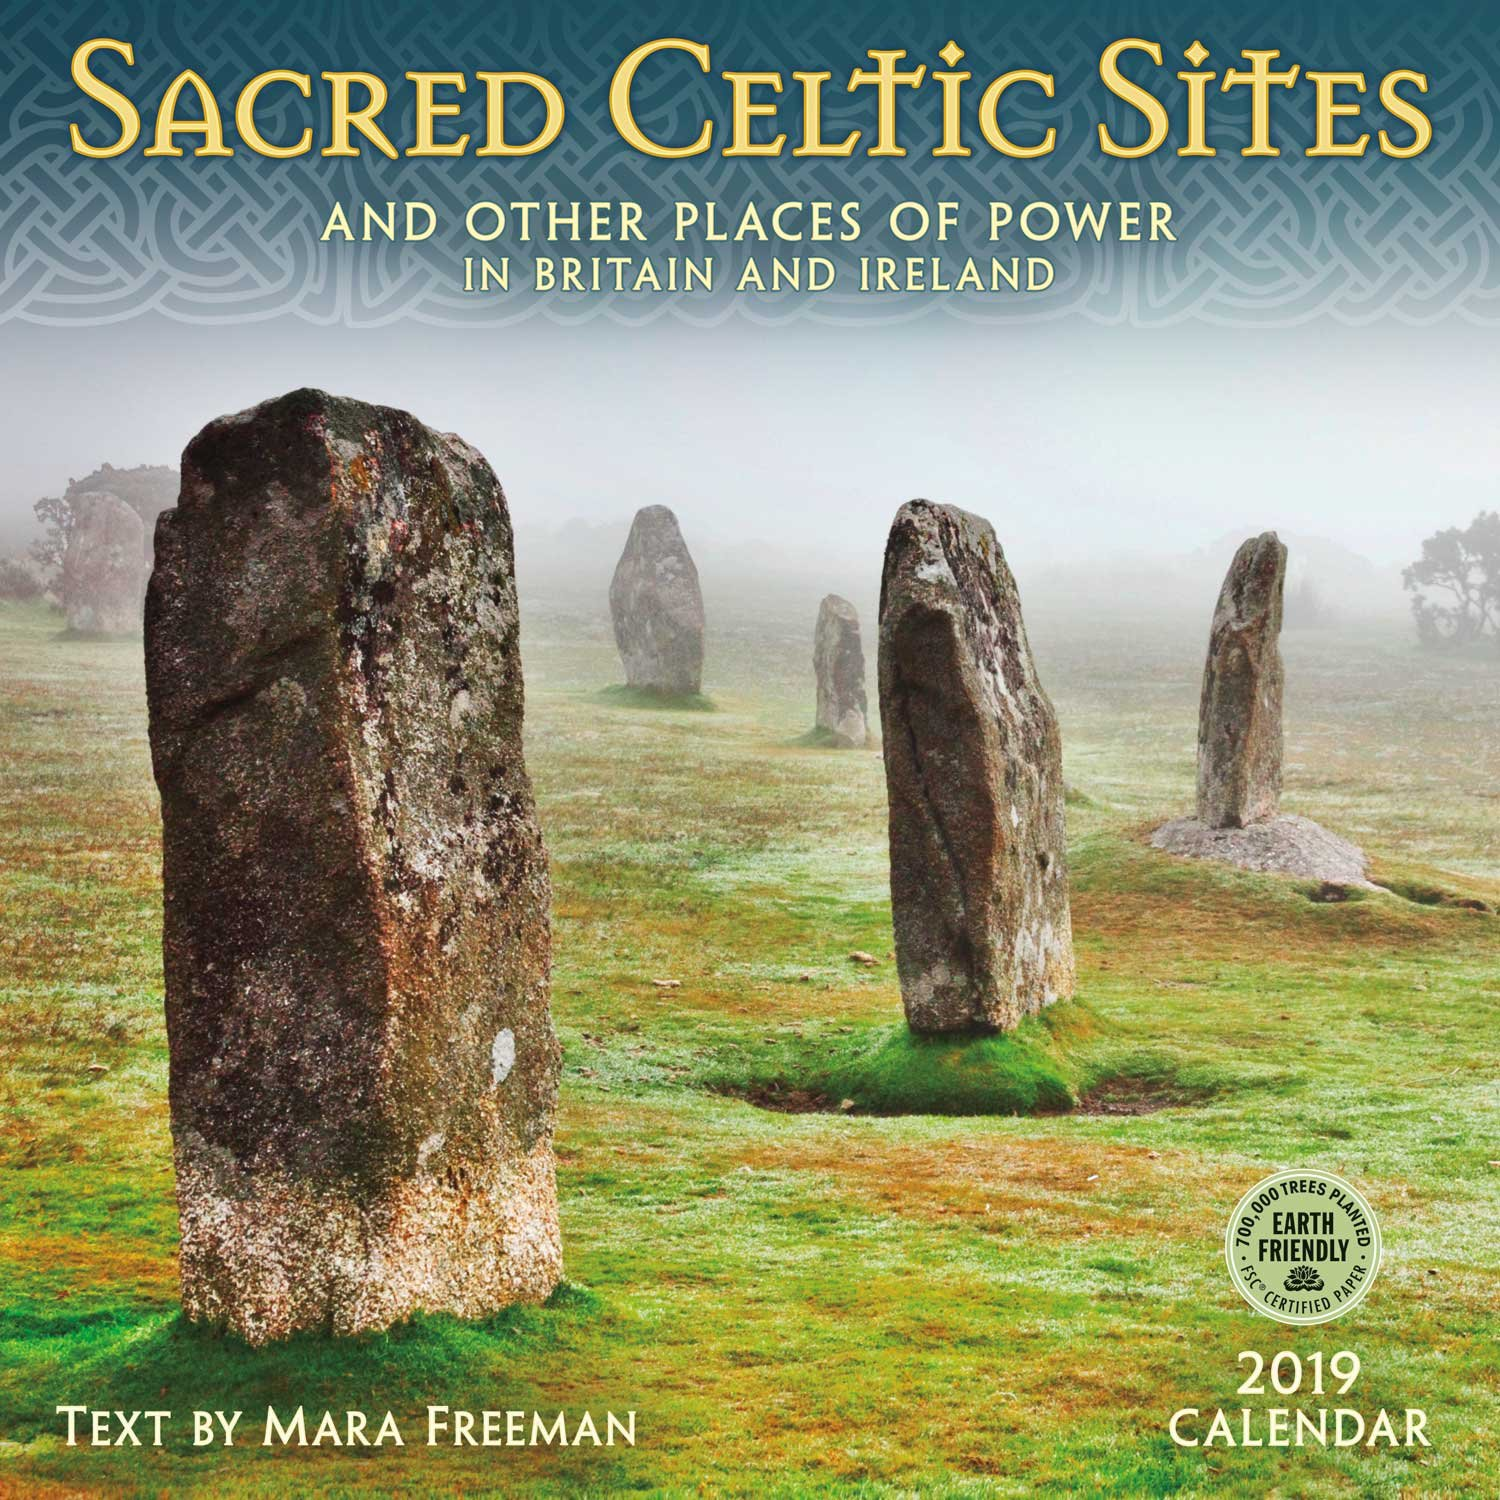 sacred celtic sites 2019 wall calendar and other places of power in britain and ireland